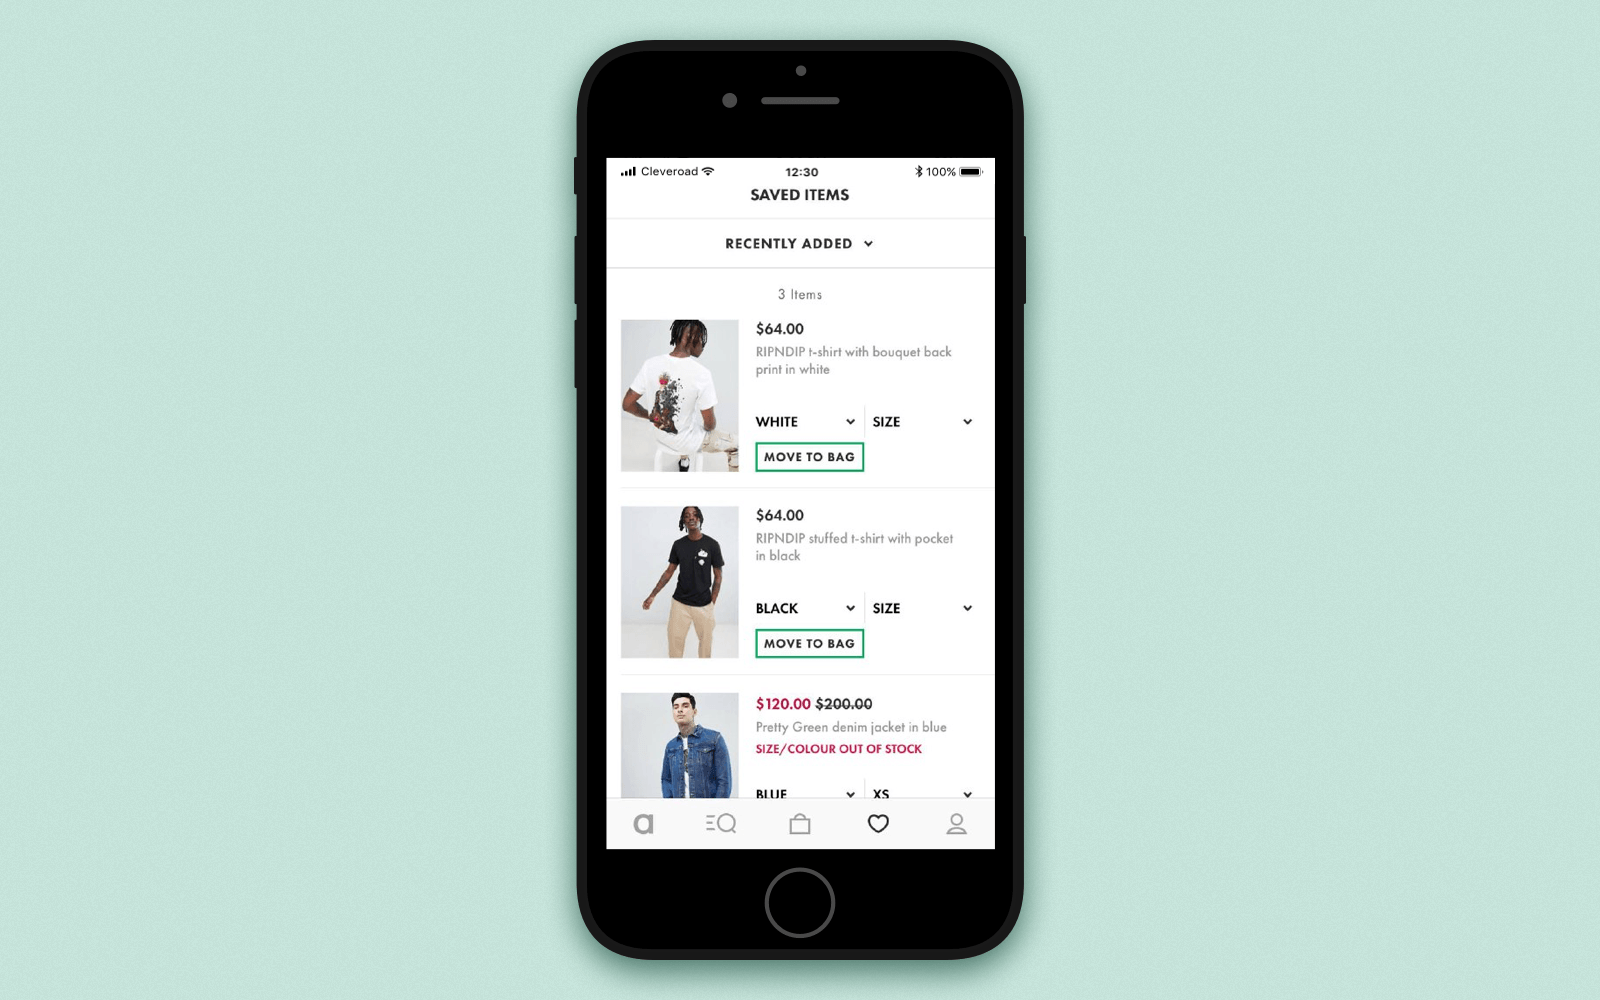 Create online shopping app with a wishlist or saved items